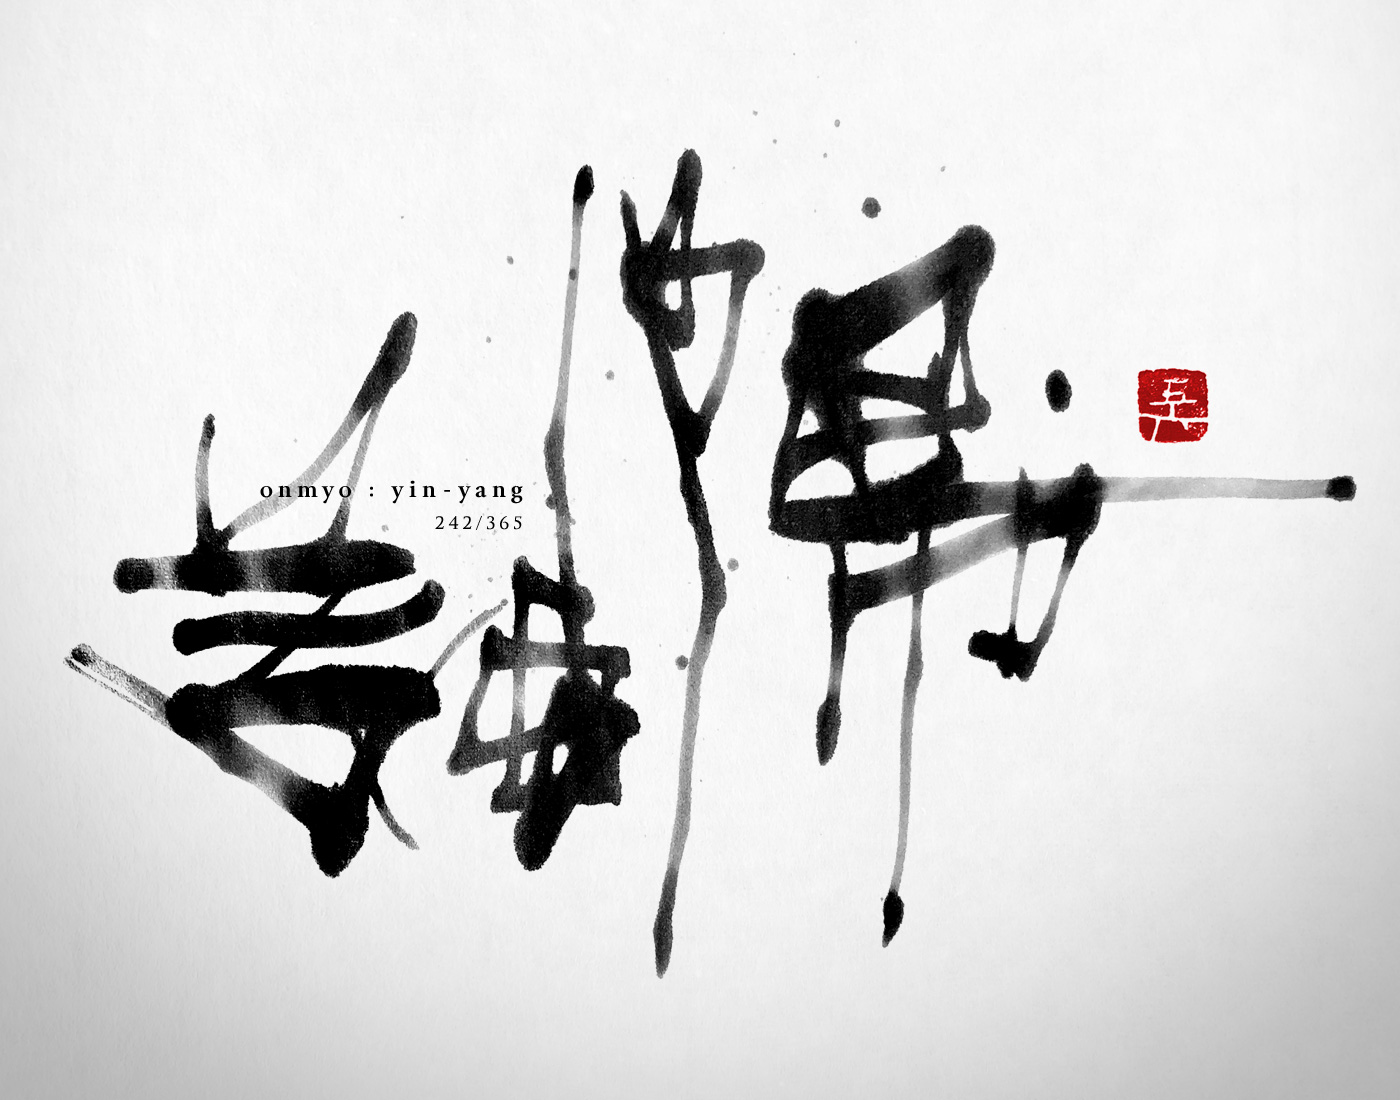 陰陽 | yin and yang 書道作品 japaneseart japanese calligraphy 書家 田川悟郎 Goroh Tagawa